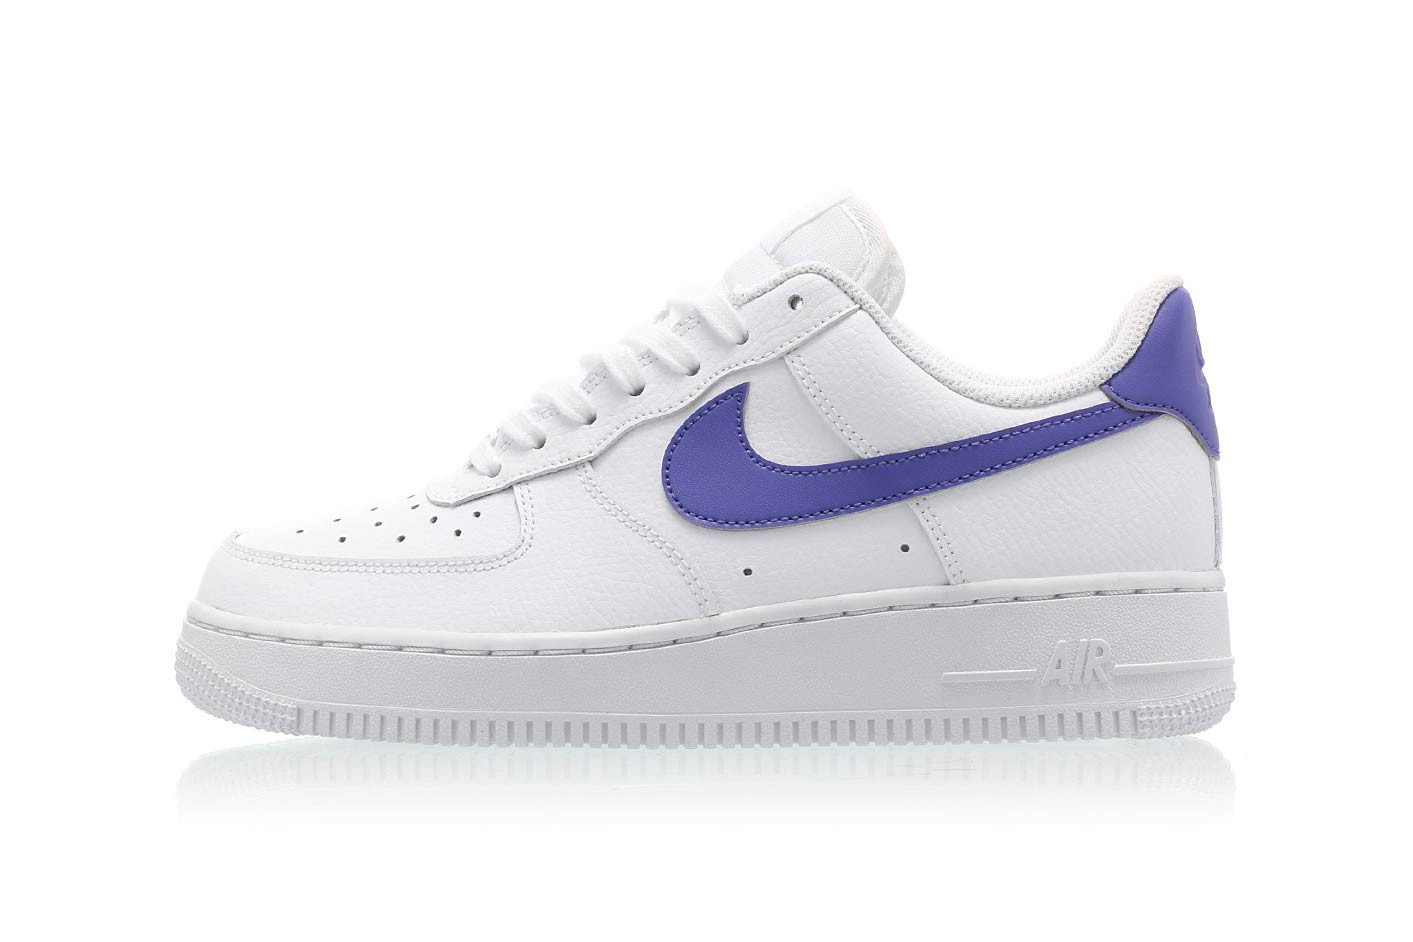 Nike Air Force 1 '07 in Ultra Violet